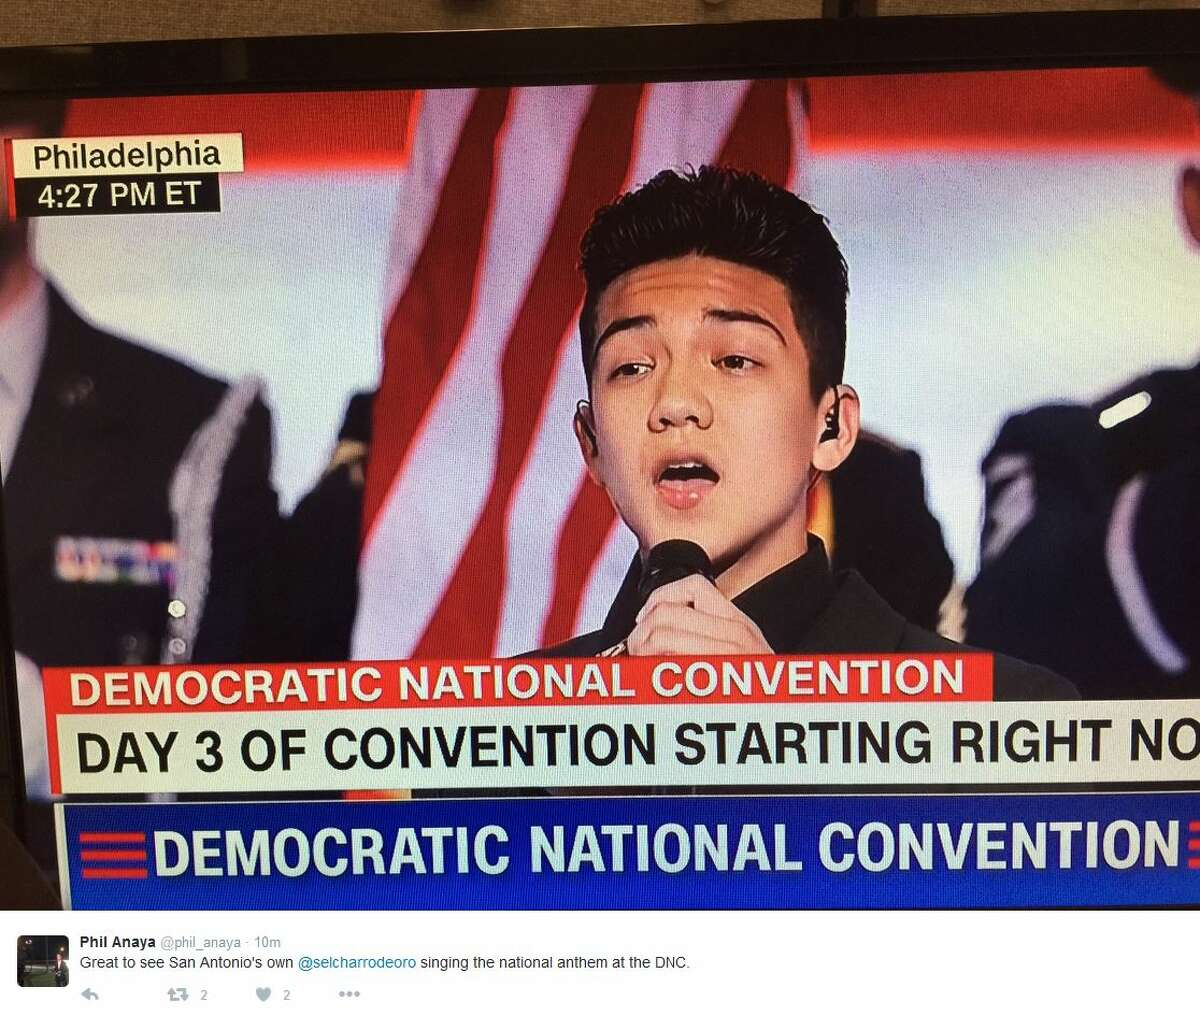 @phil_anaya 1h1 hour ago Great to see San Antonio's own @selcharrodeoro singing the national anthem at the DNC.